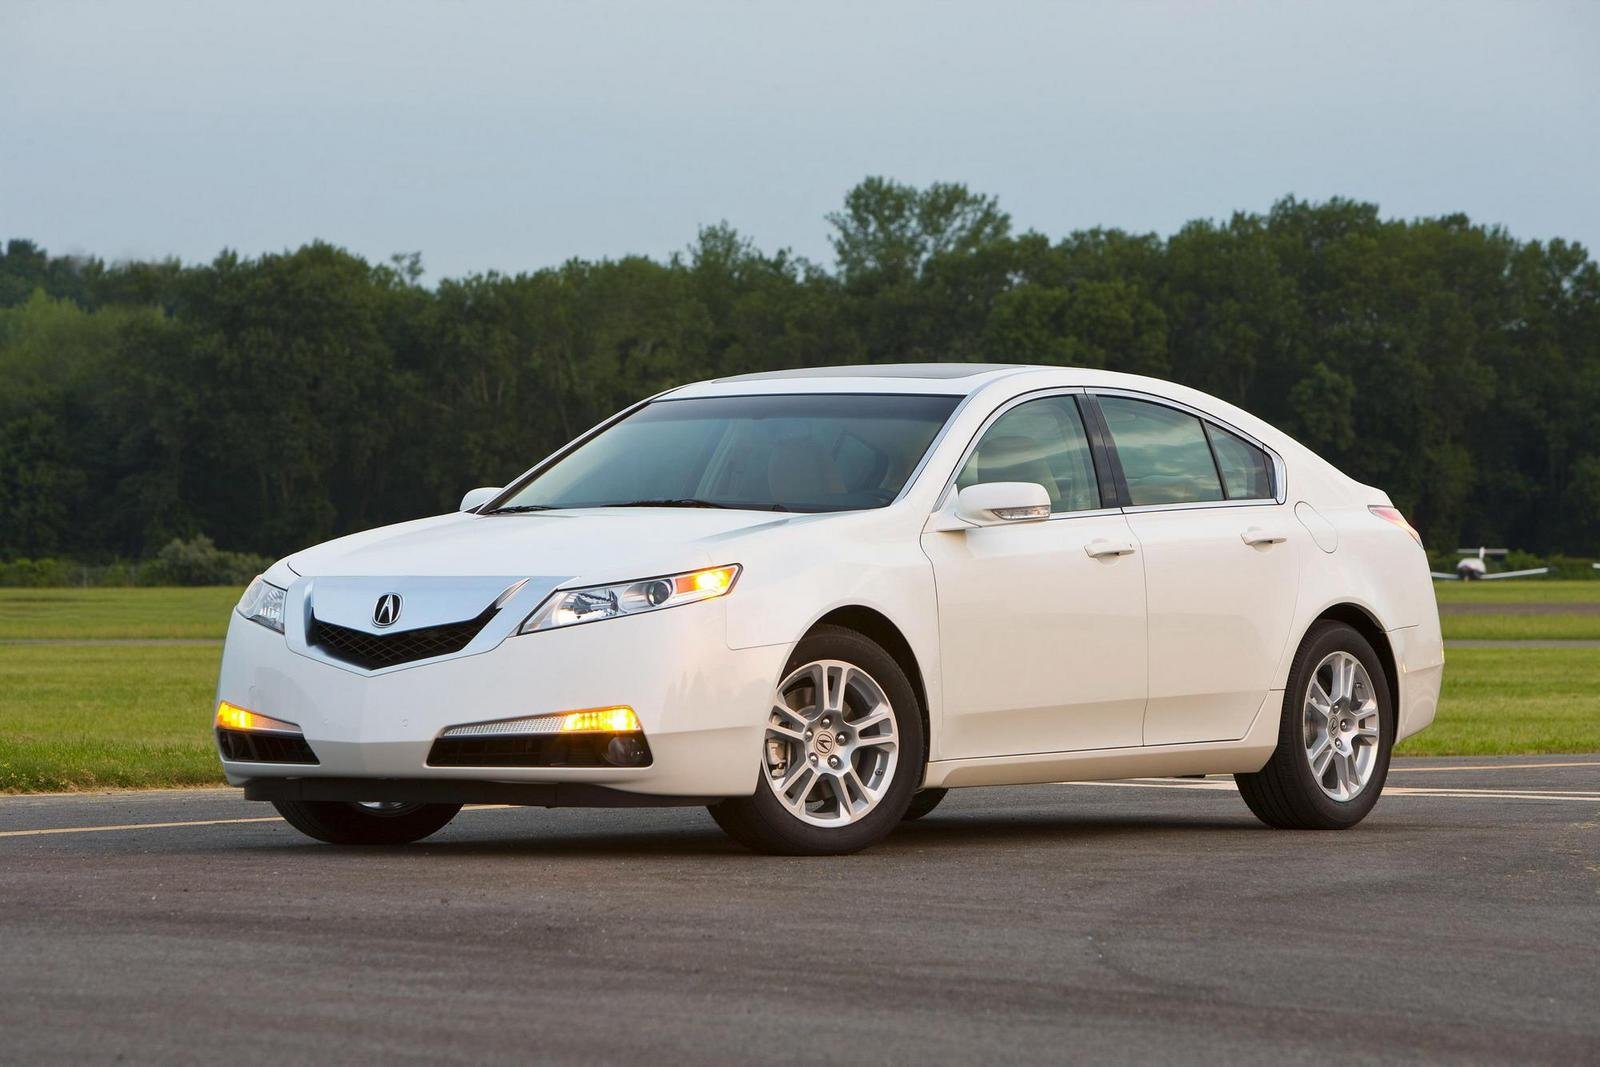 2010 acura tl picture 326226 car review top speed. Black Bedroom Furniture Sets. Home Design Ideas